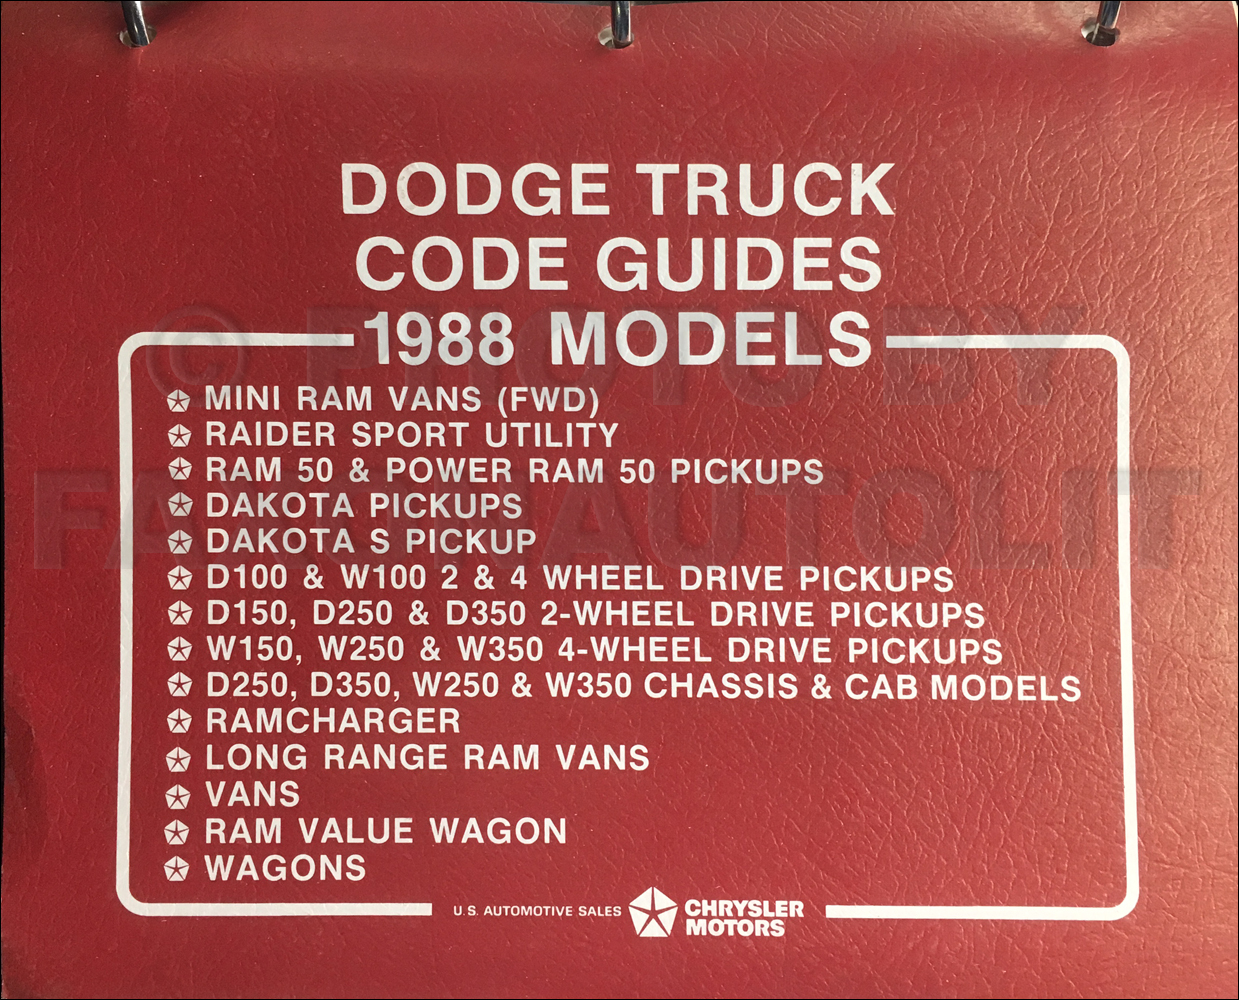 1988 Dodge Truck Ordering Guide Original